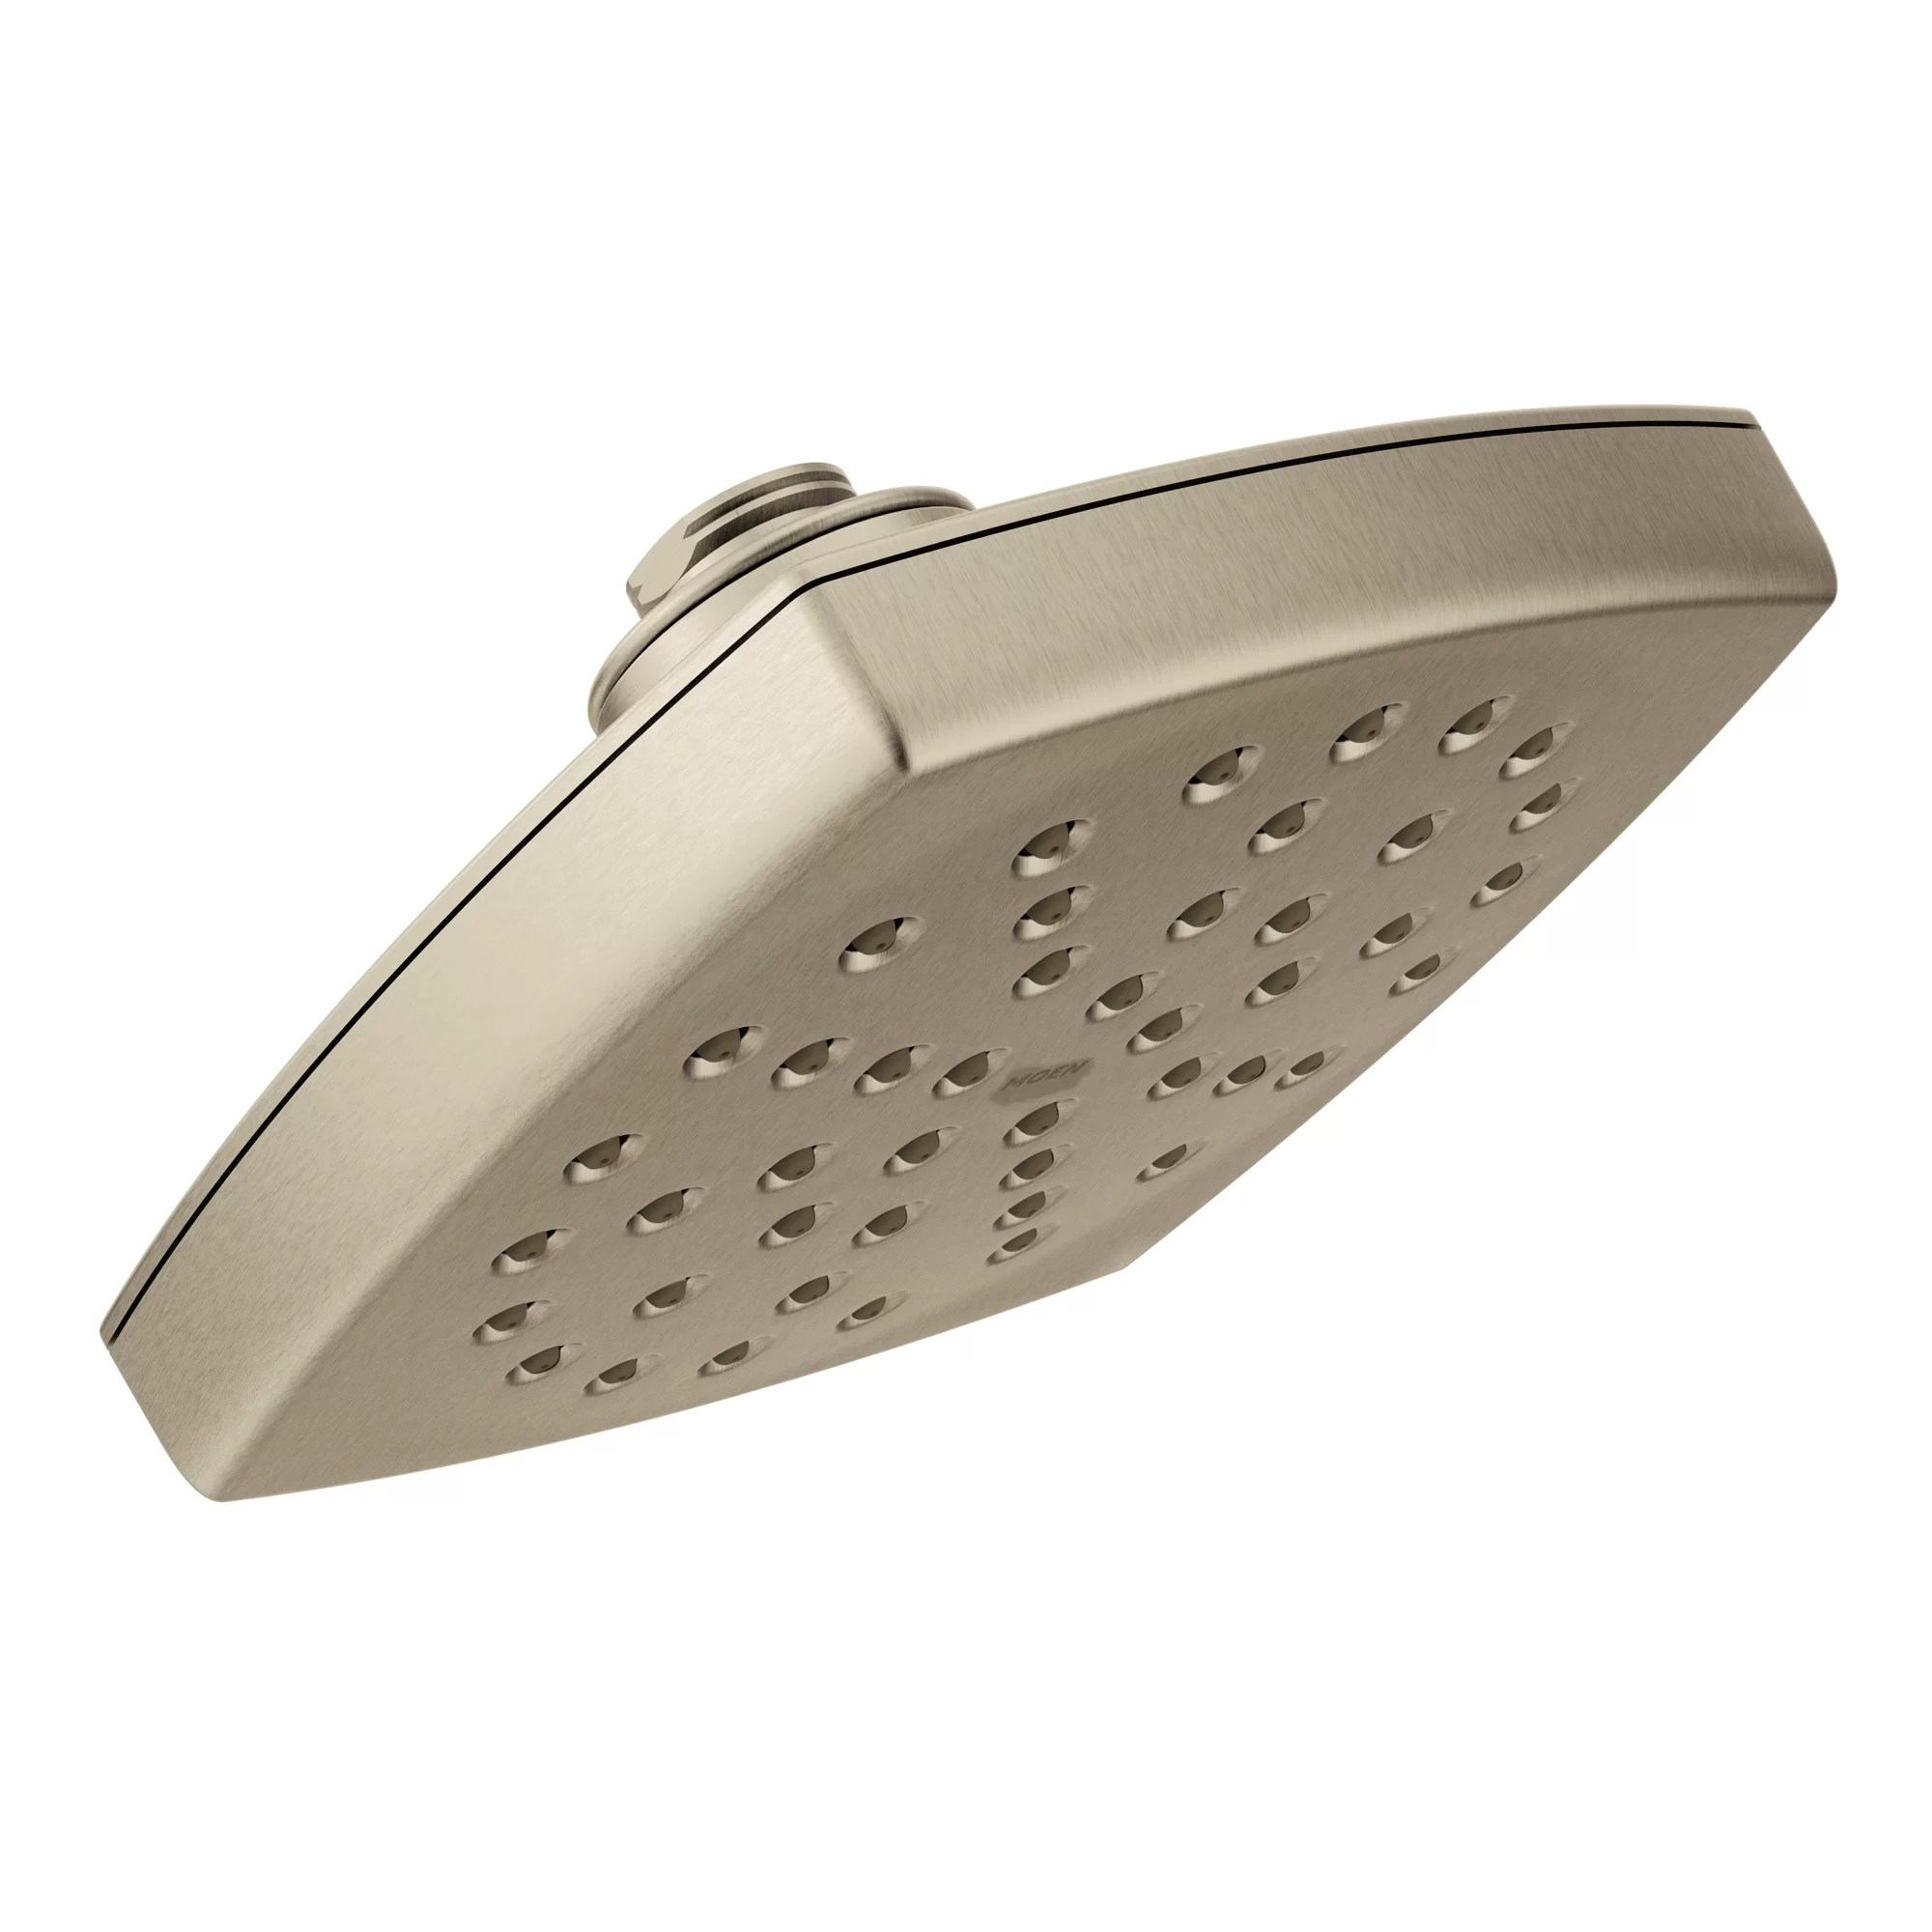 Details About Moen Voss Shower Head With Immersion Chrome 2 5 Gpm